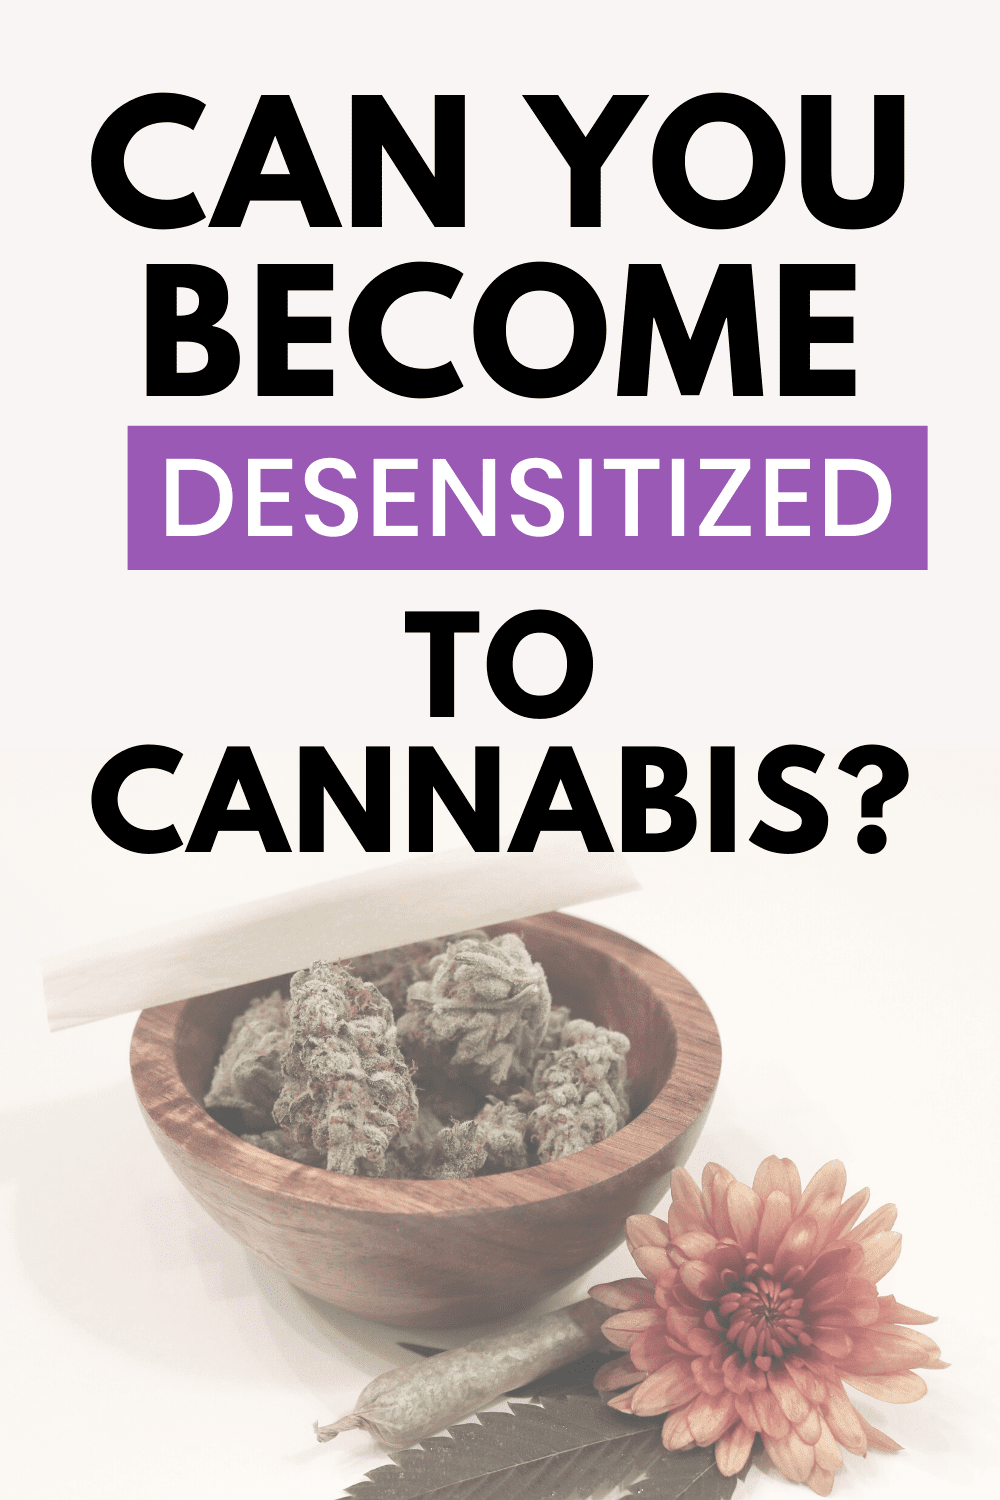 Can You Become Desensitized to Cannabis?